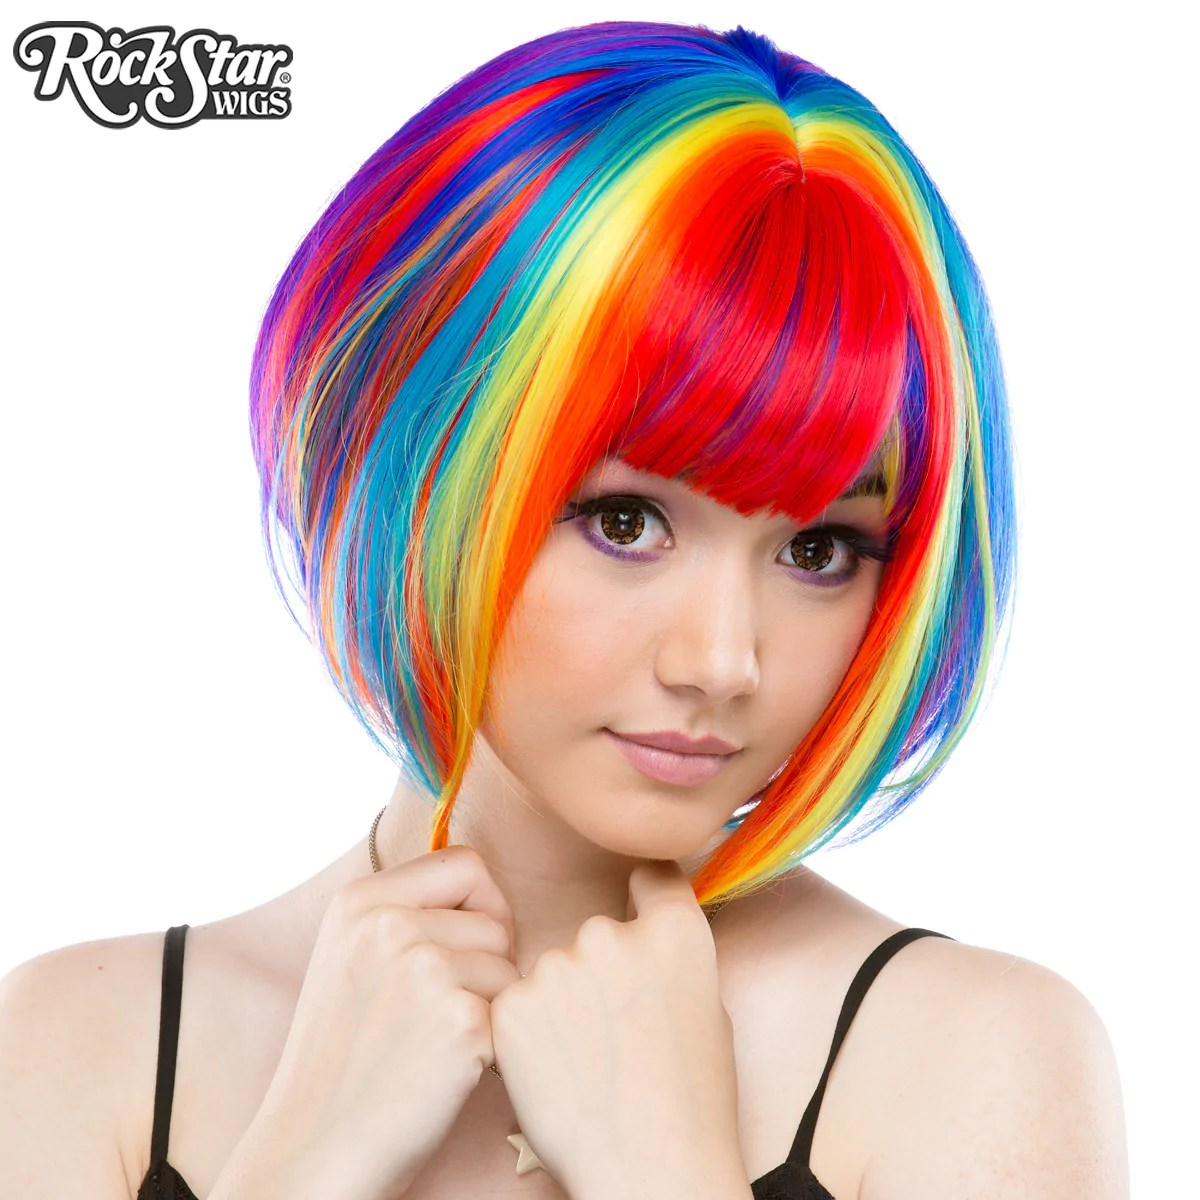 Orange Wig Bob Rockstar Wigs® Rainbow Rock™ Collection Rainbow Bob ロリータ